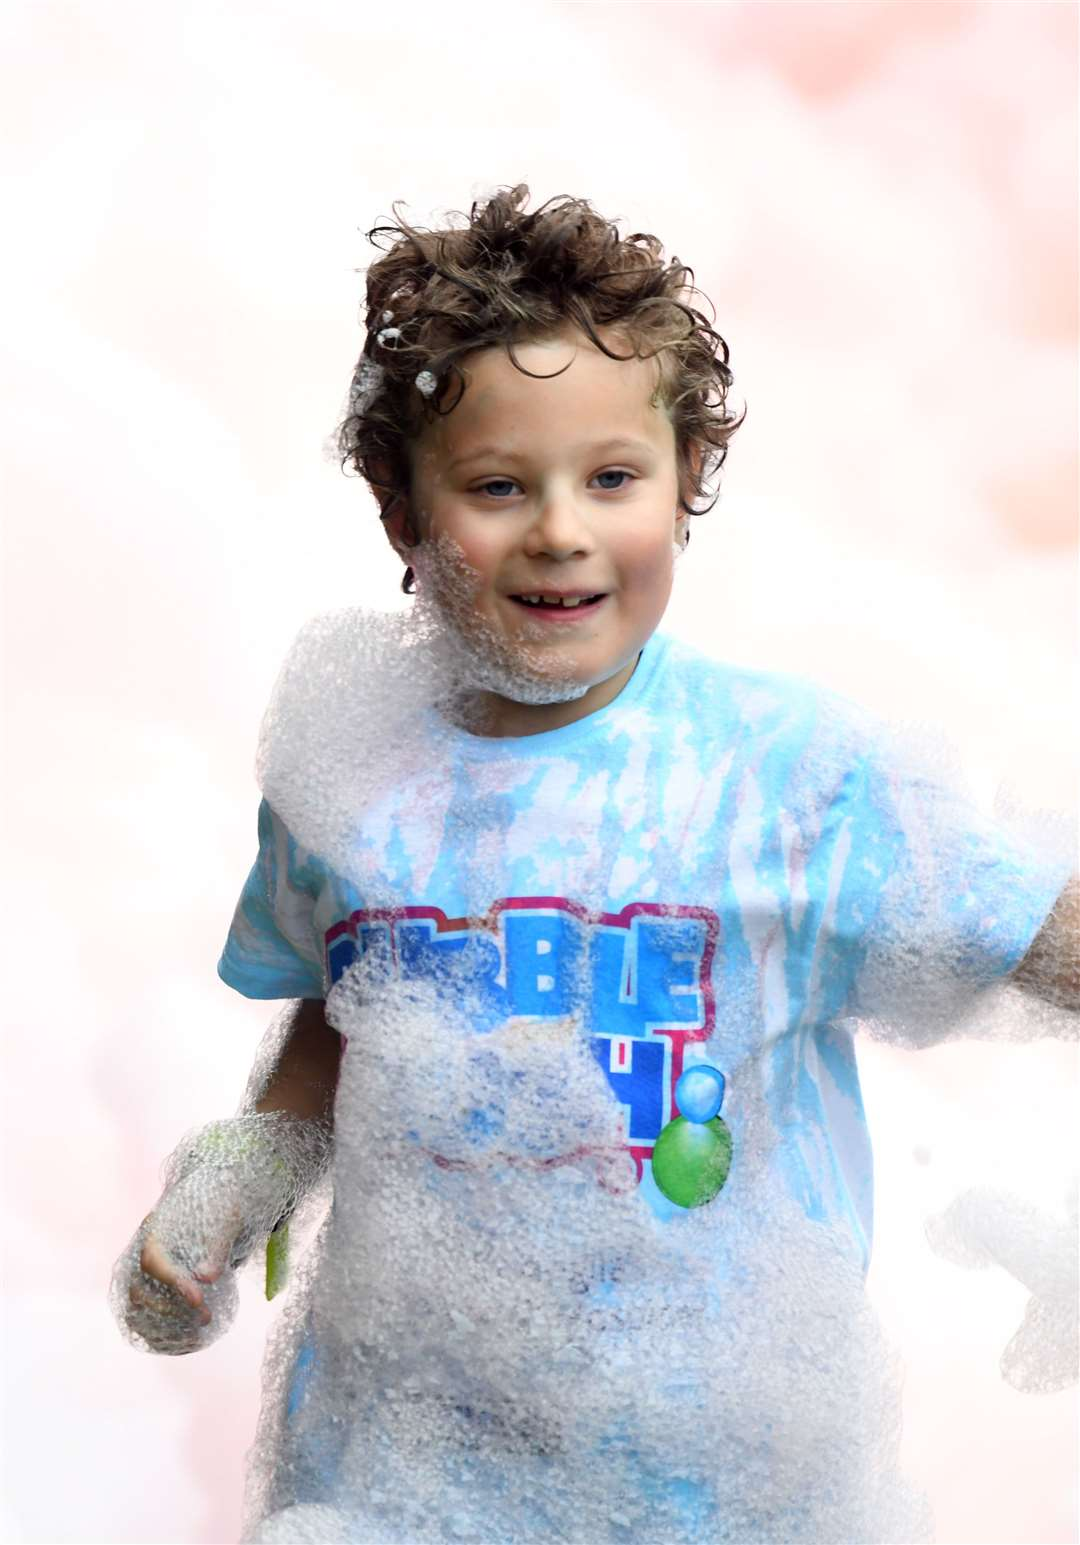 Bubble Rush at The Walks in Kings Lynn. MLNF-21AF09587